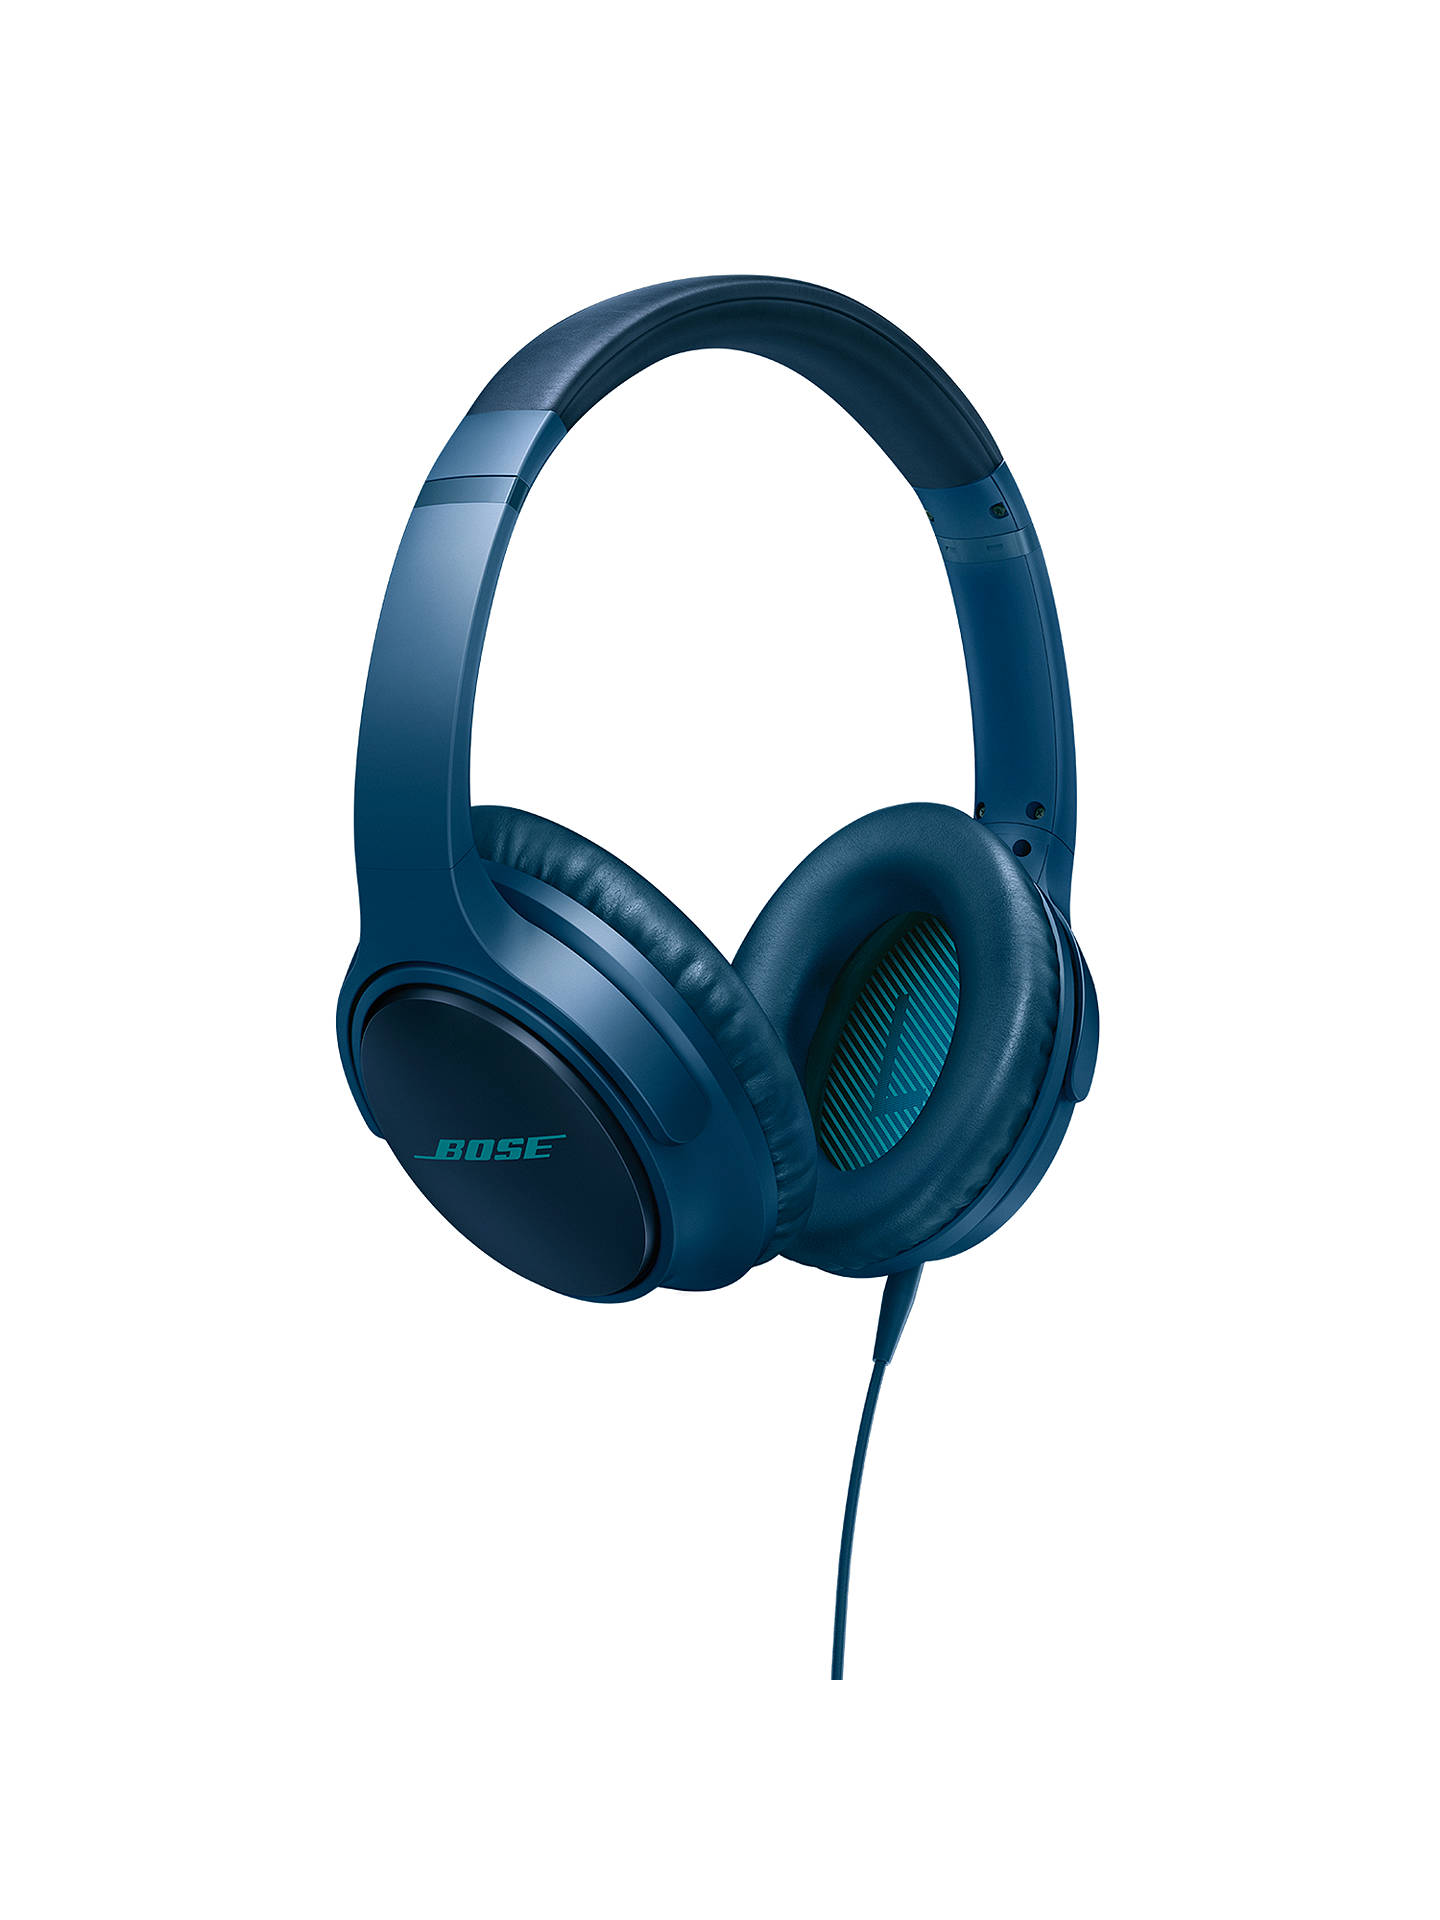 Buy Bose® SoundTrue™ AE II Full-Size Headphones with In-Line Mic/Remote for Samsung & Android Devices, Navy Online at johnlewis.com